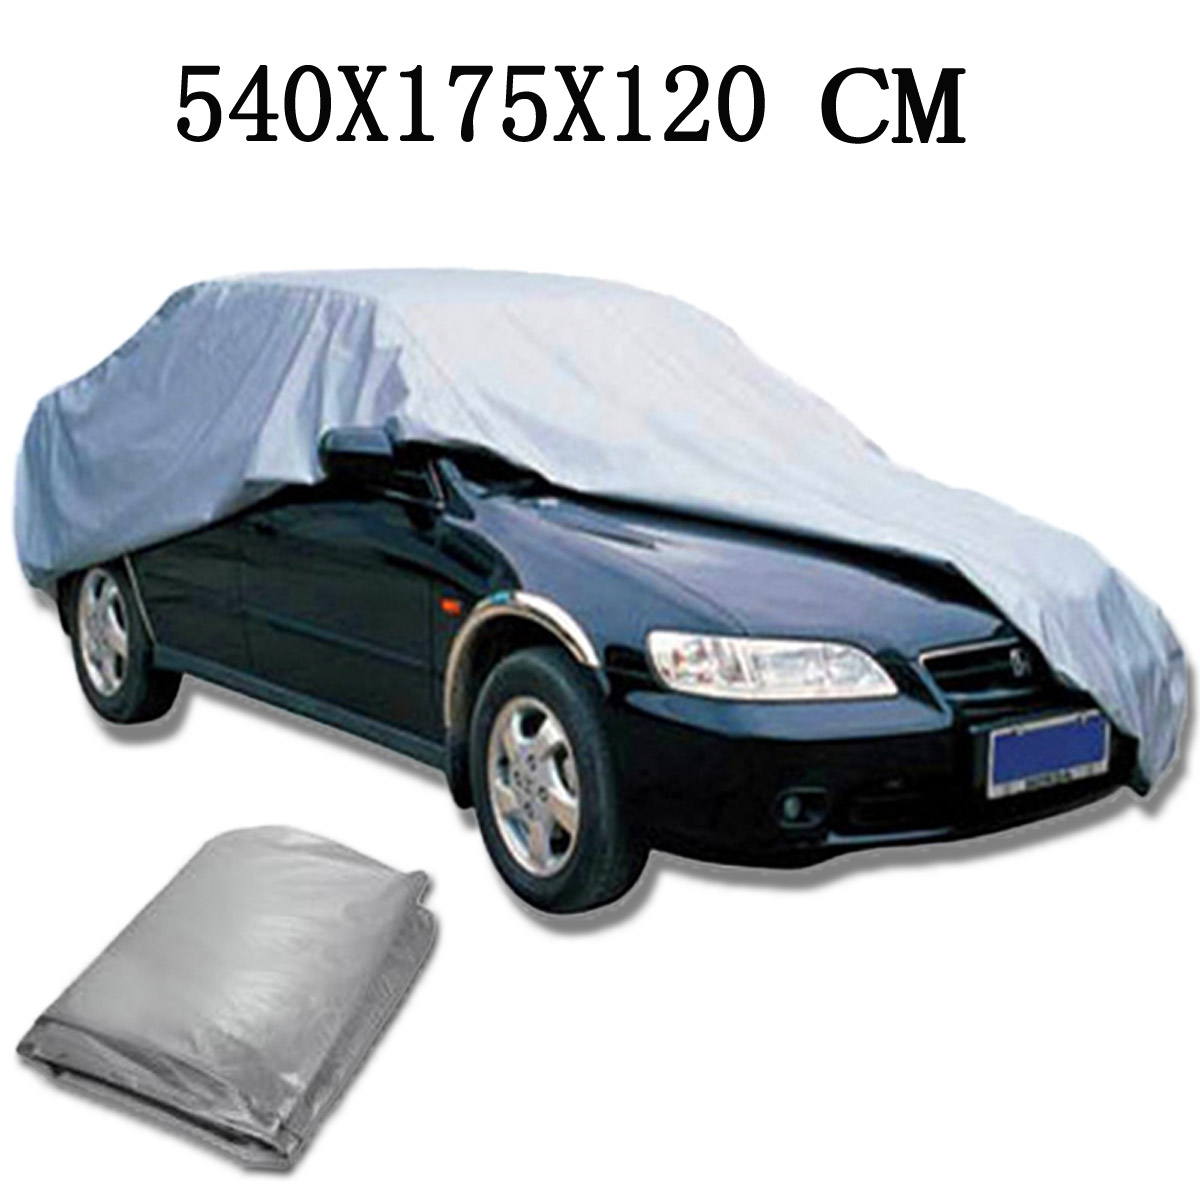 XL 540x175x120 cm Canvas Car Cover Waterproof Anti-scratch Protector Universal